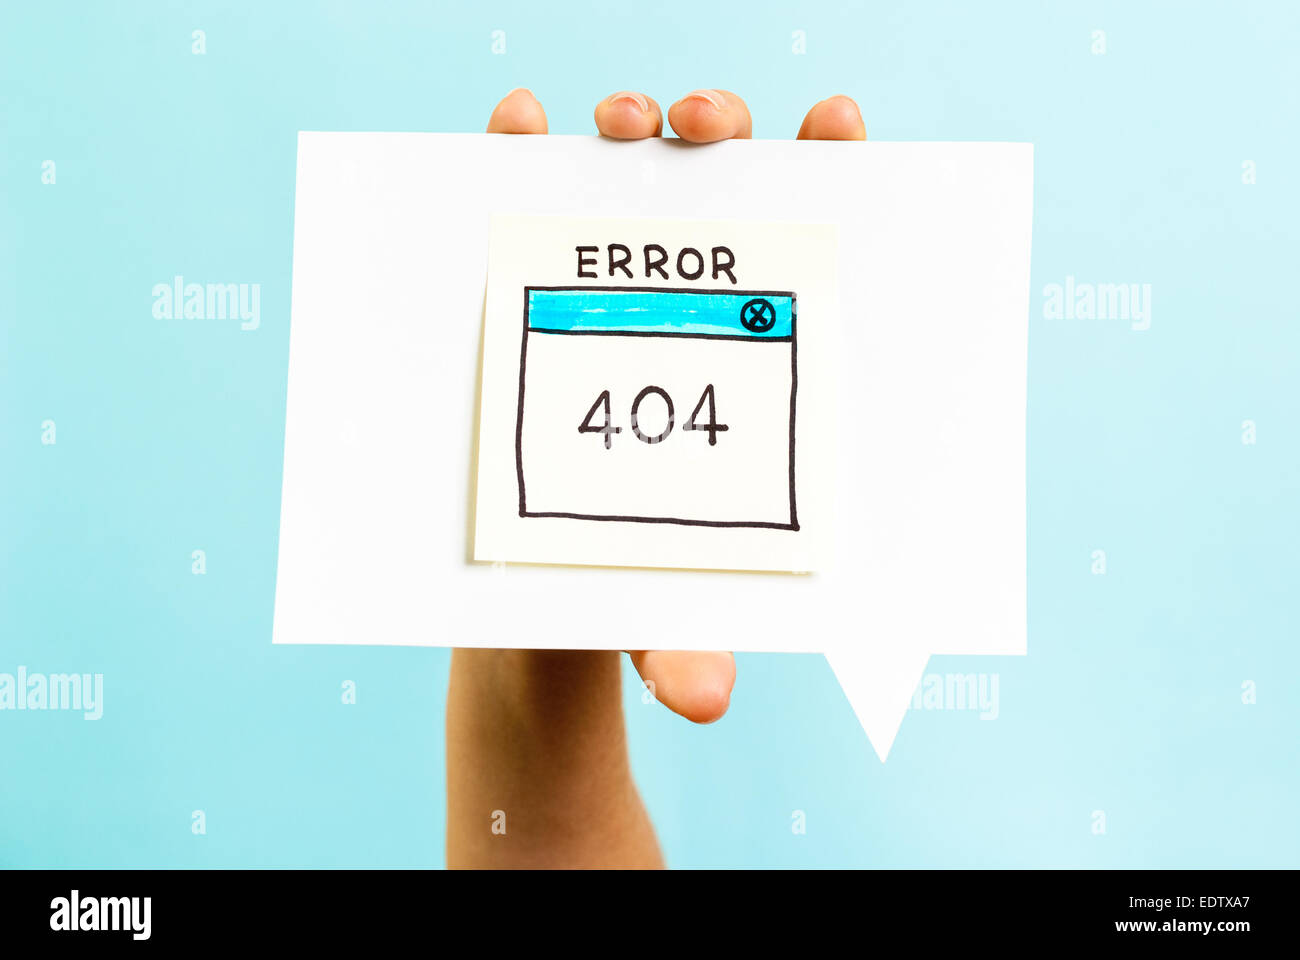 Internet error 404 page not found on blue background - Stock Image